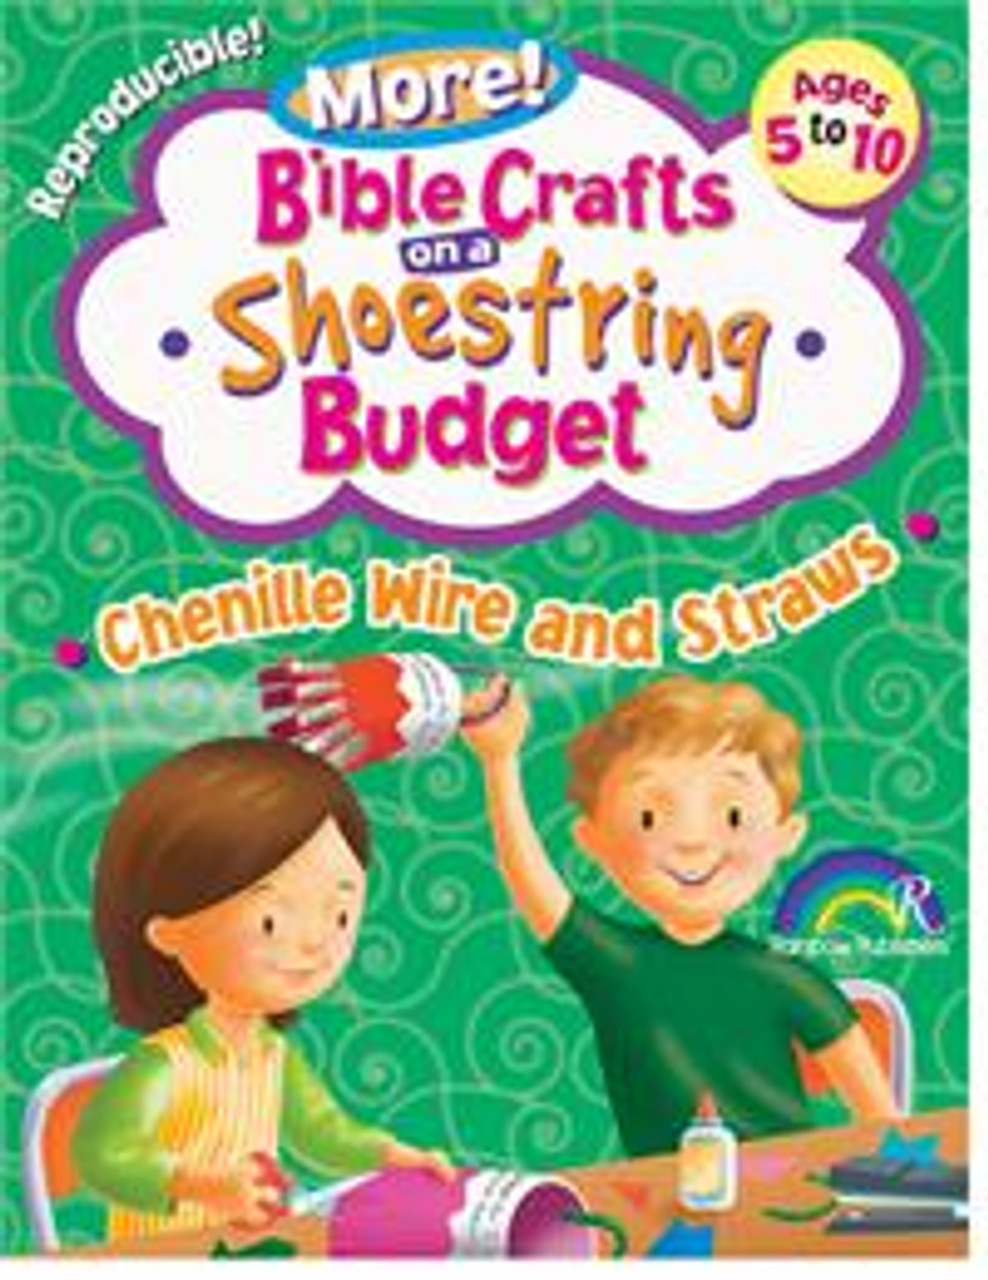 More! Bible Crafts on a Shoestring Budget Chenile Wire and Straws